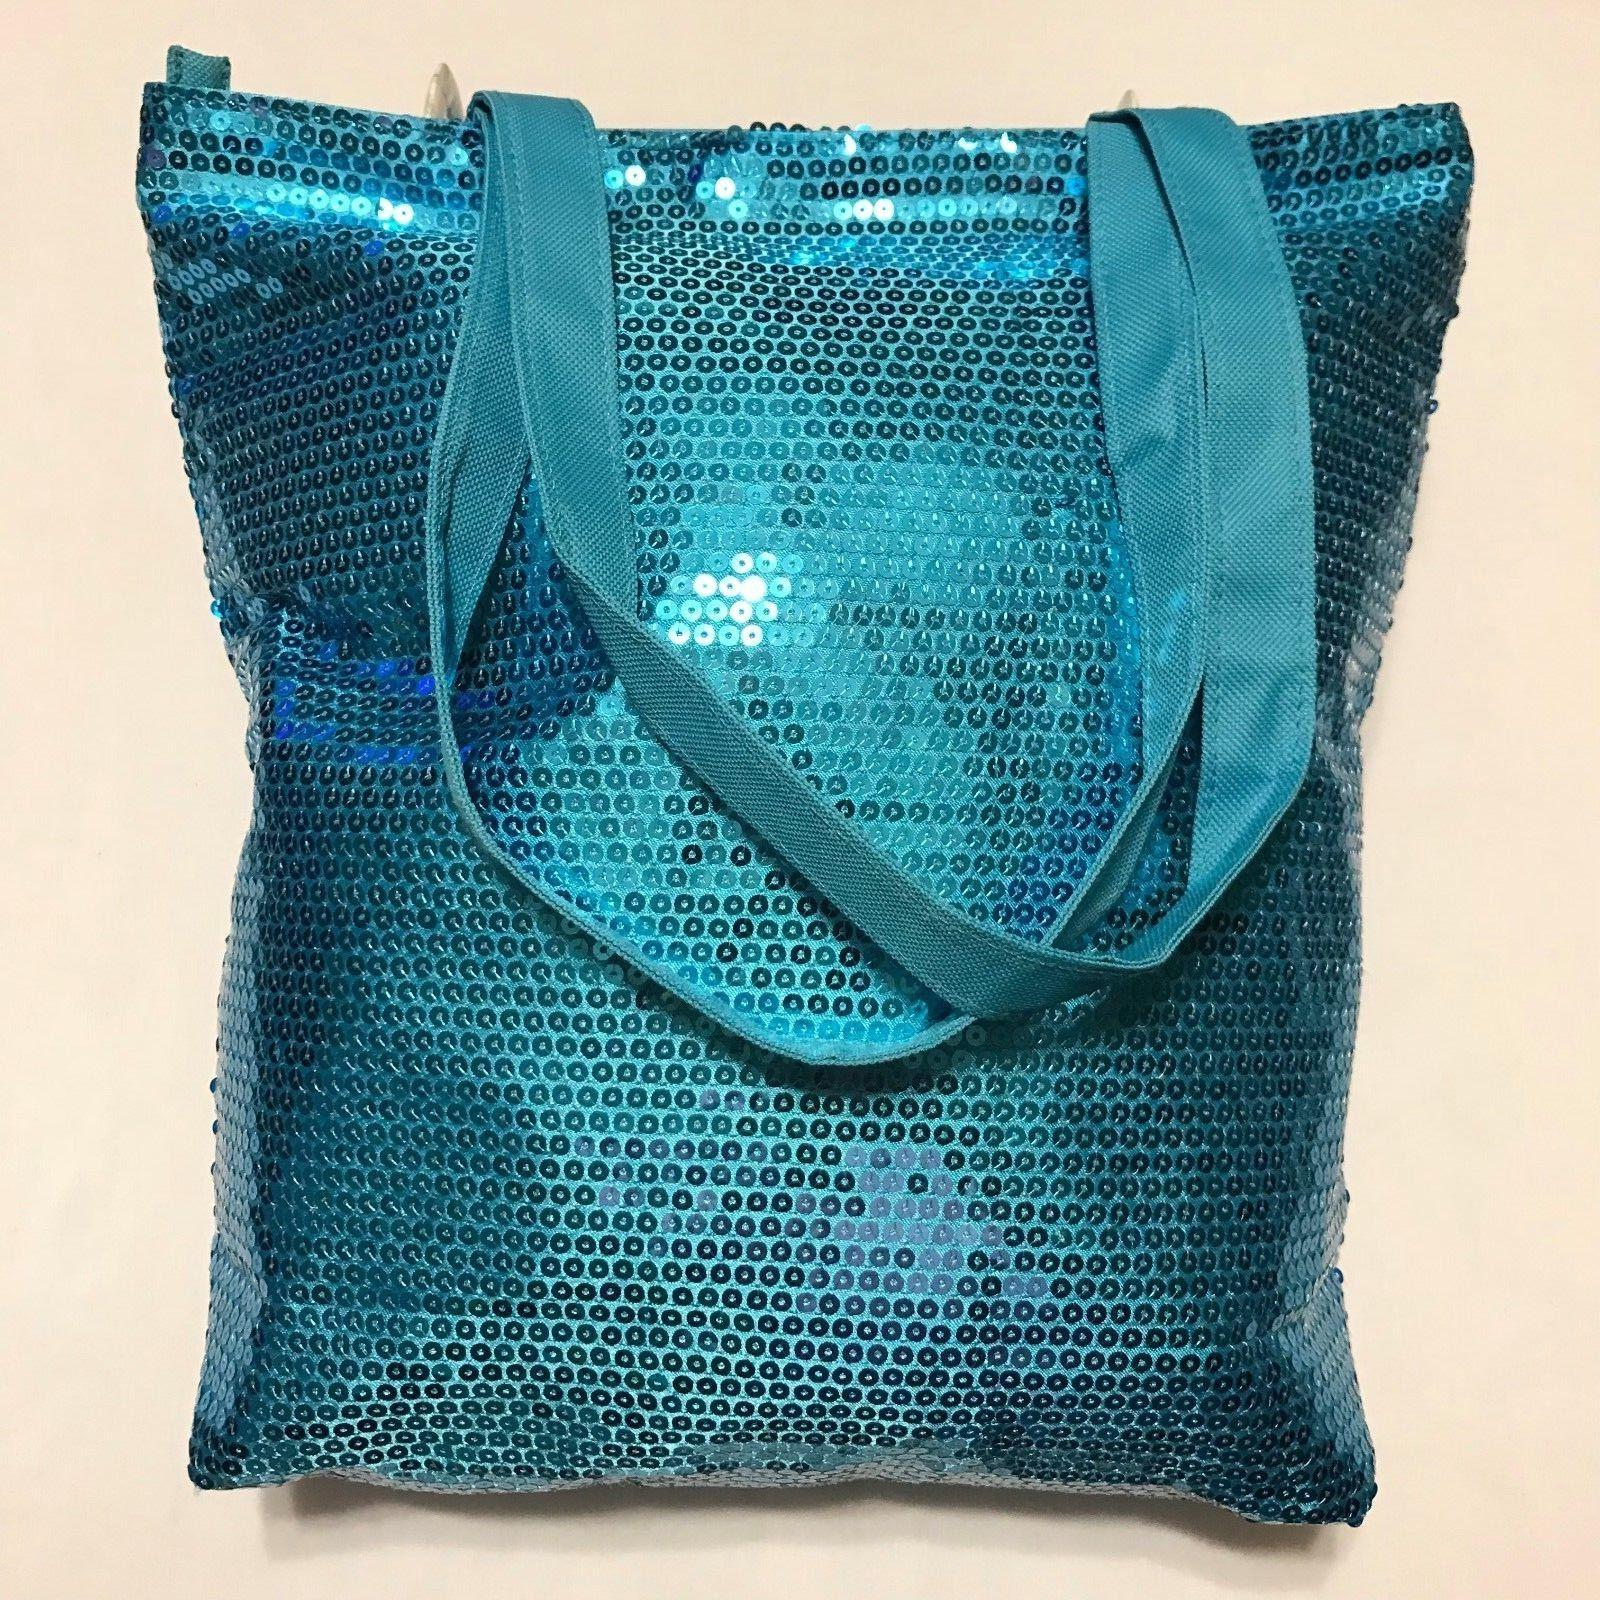 N'GIL® Turquoise Sequin Tote Bag, Lined, Double Handles, Li